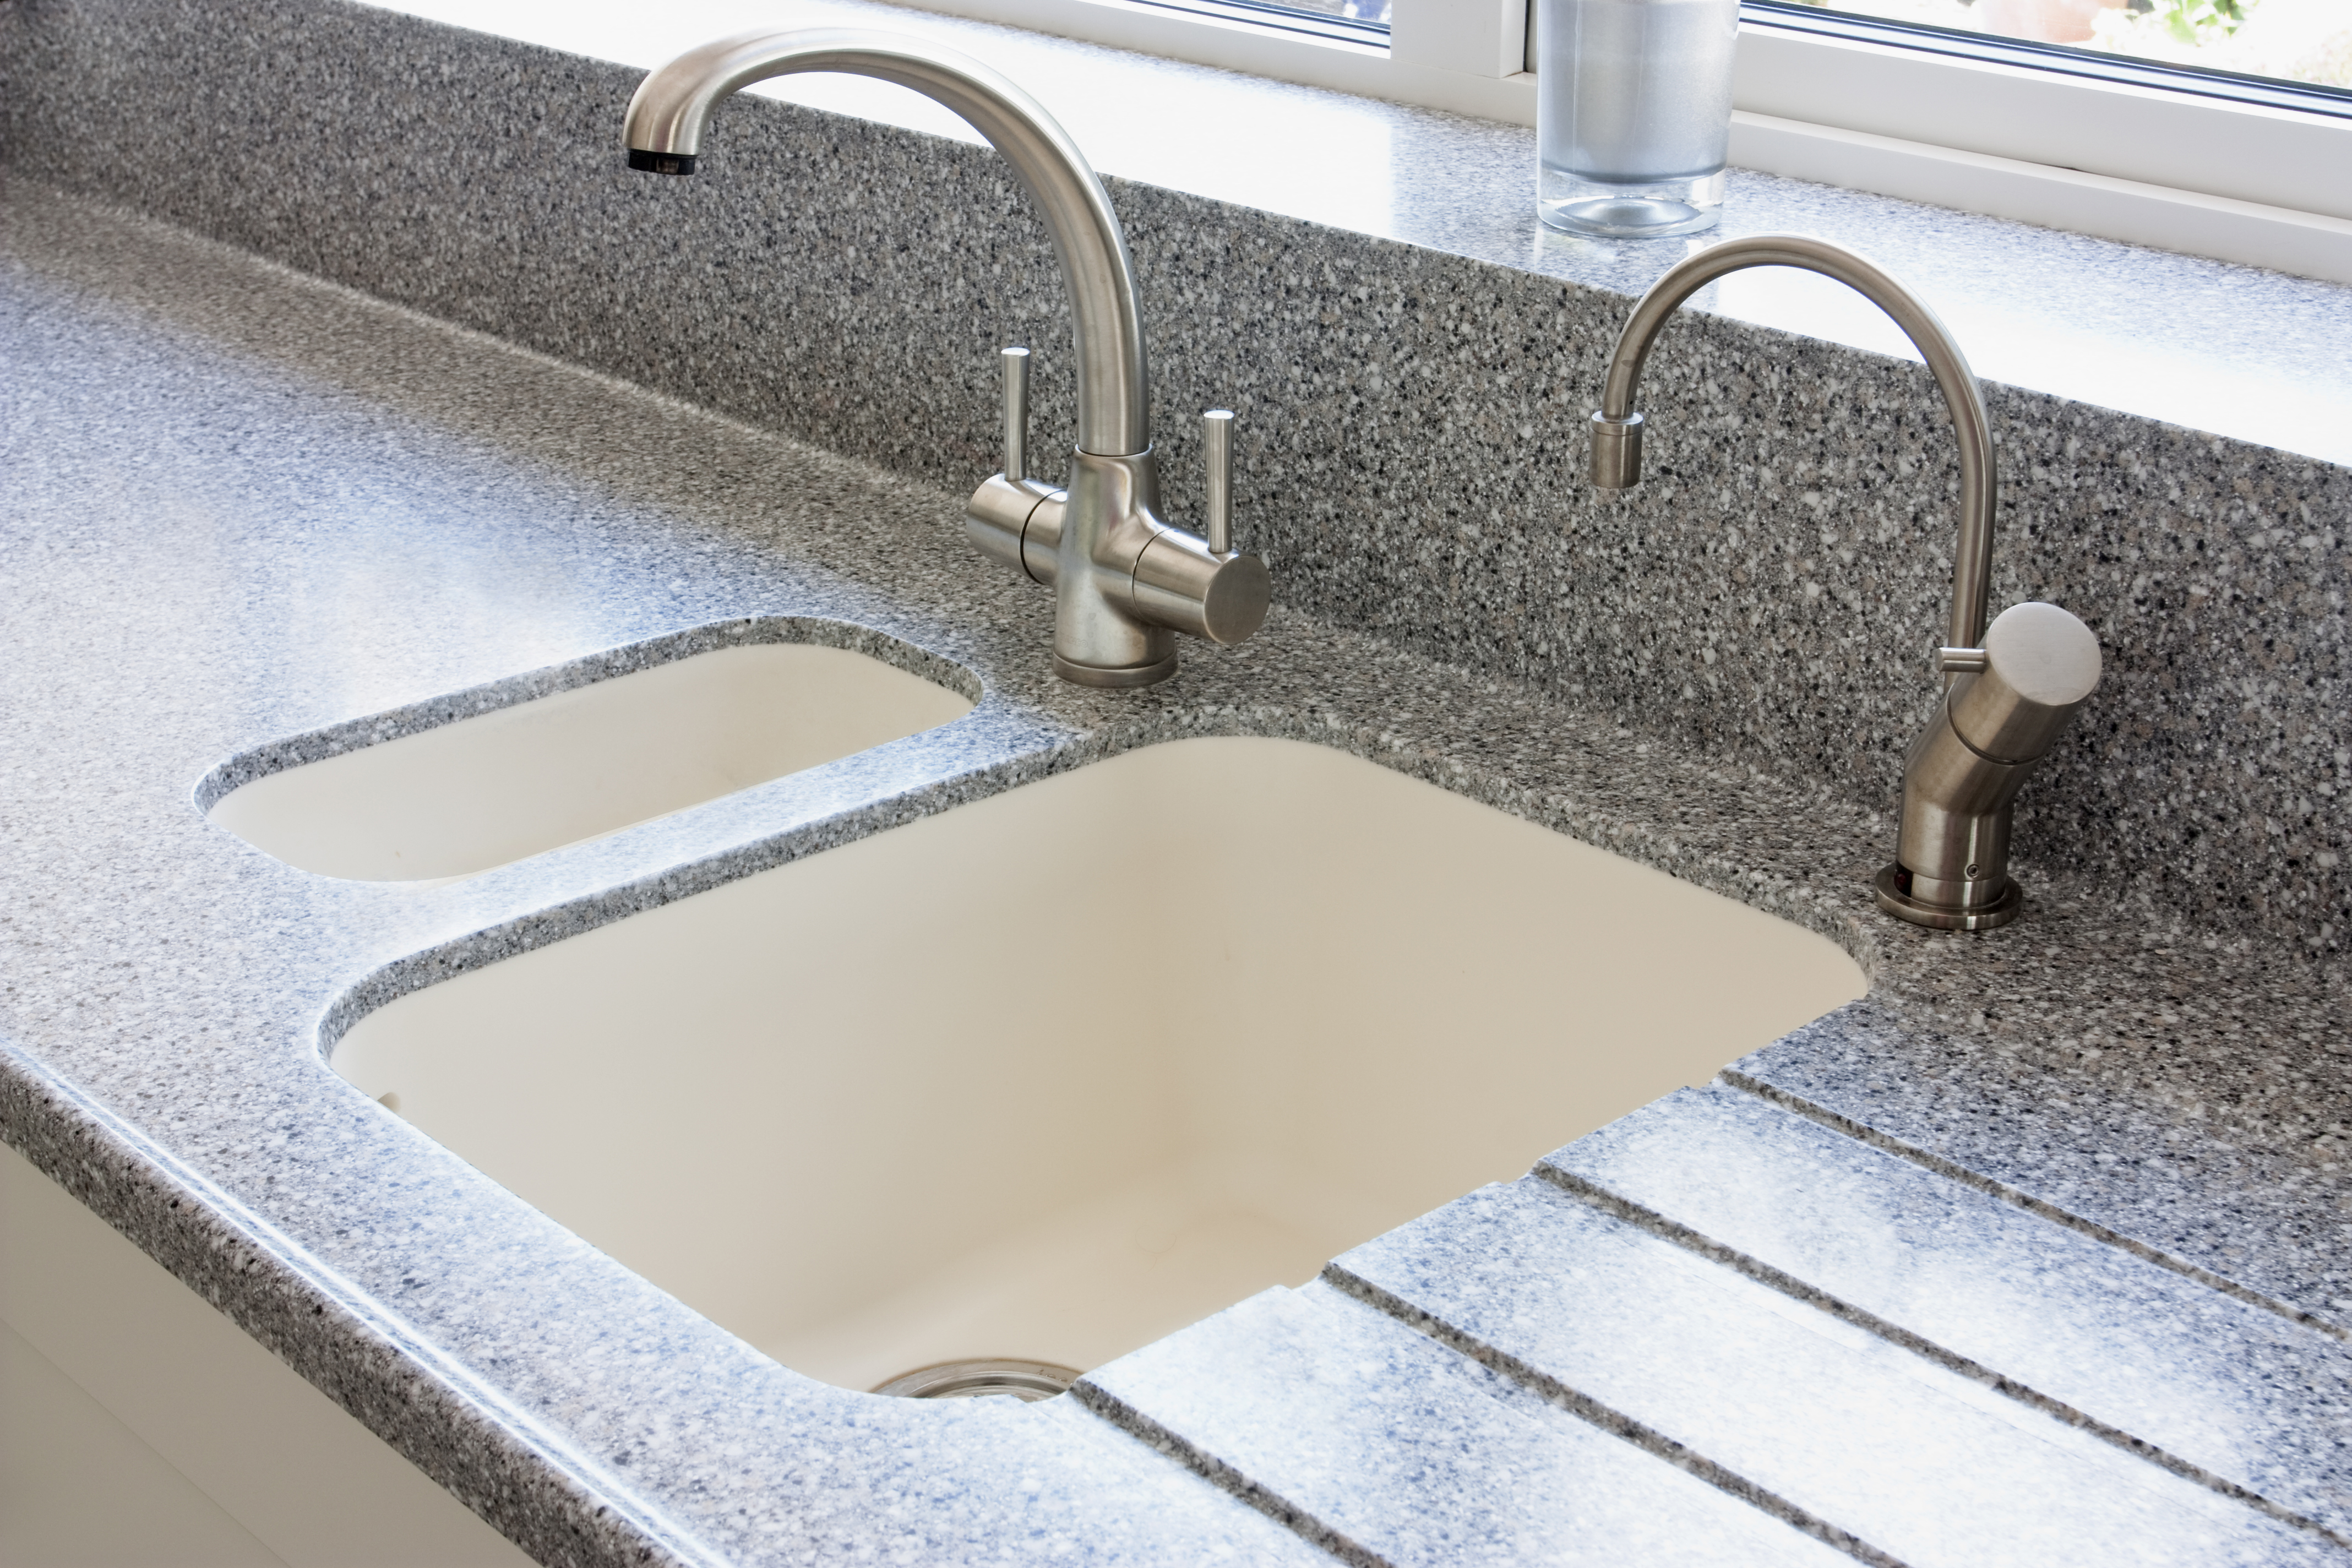 How to Clean a Drain With Baking Soda & Vinegar | Hunker